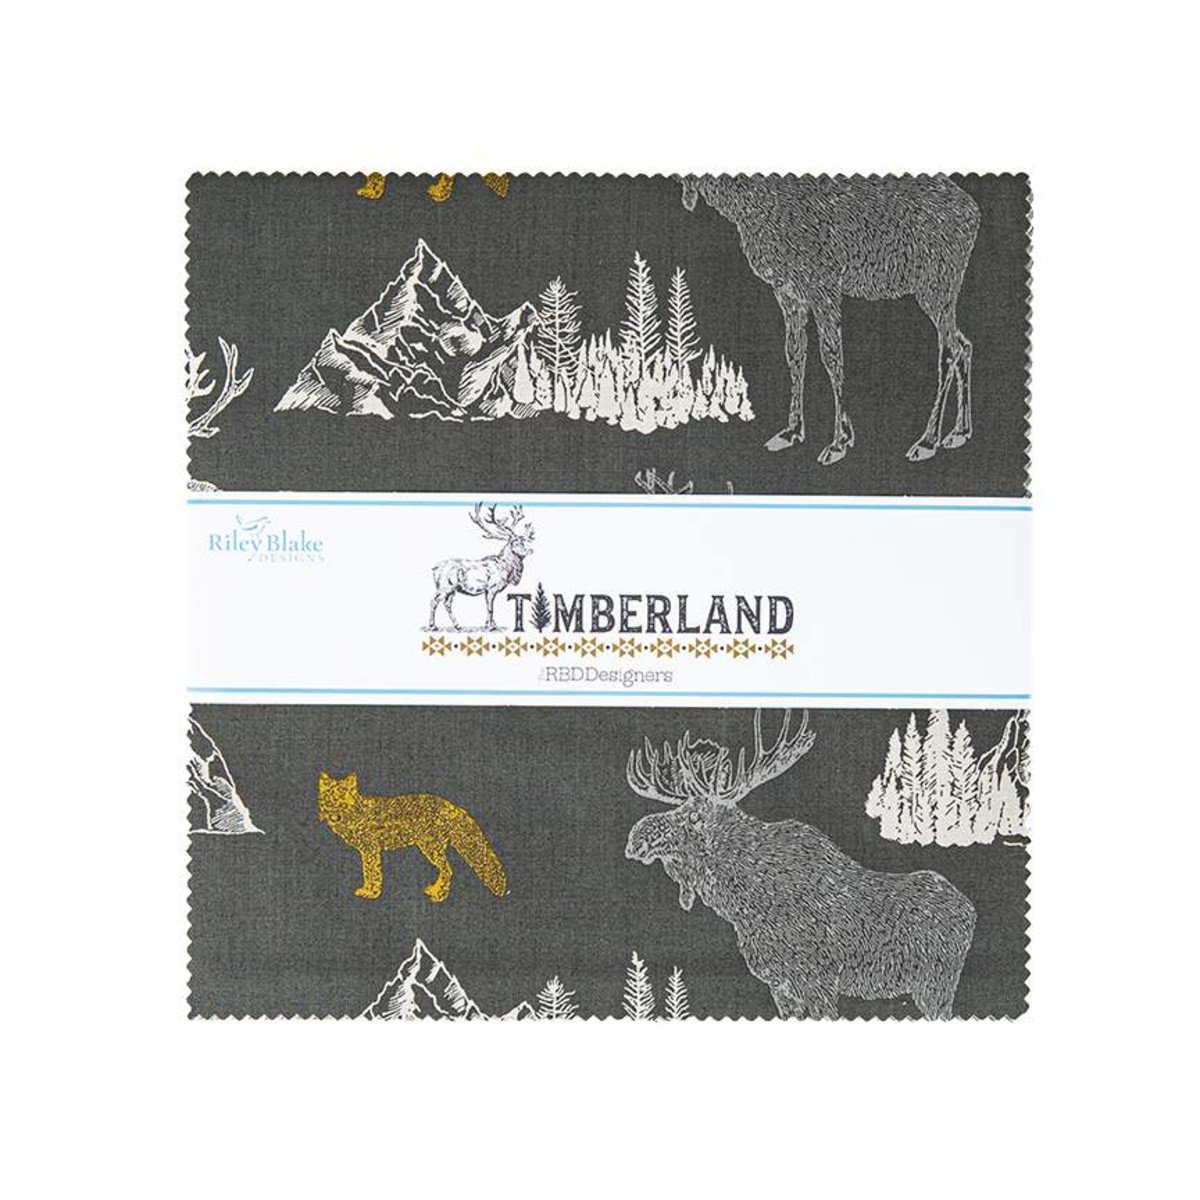 Timberland 10 Stacker 42 pieces